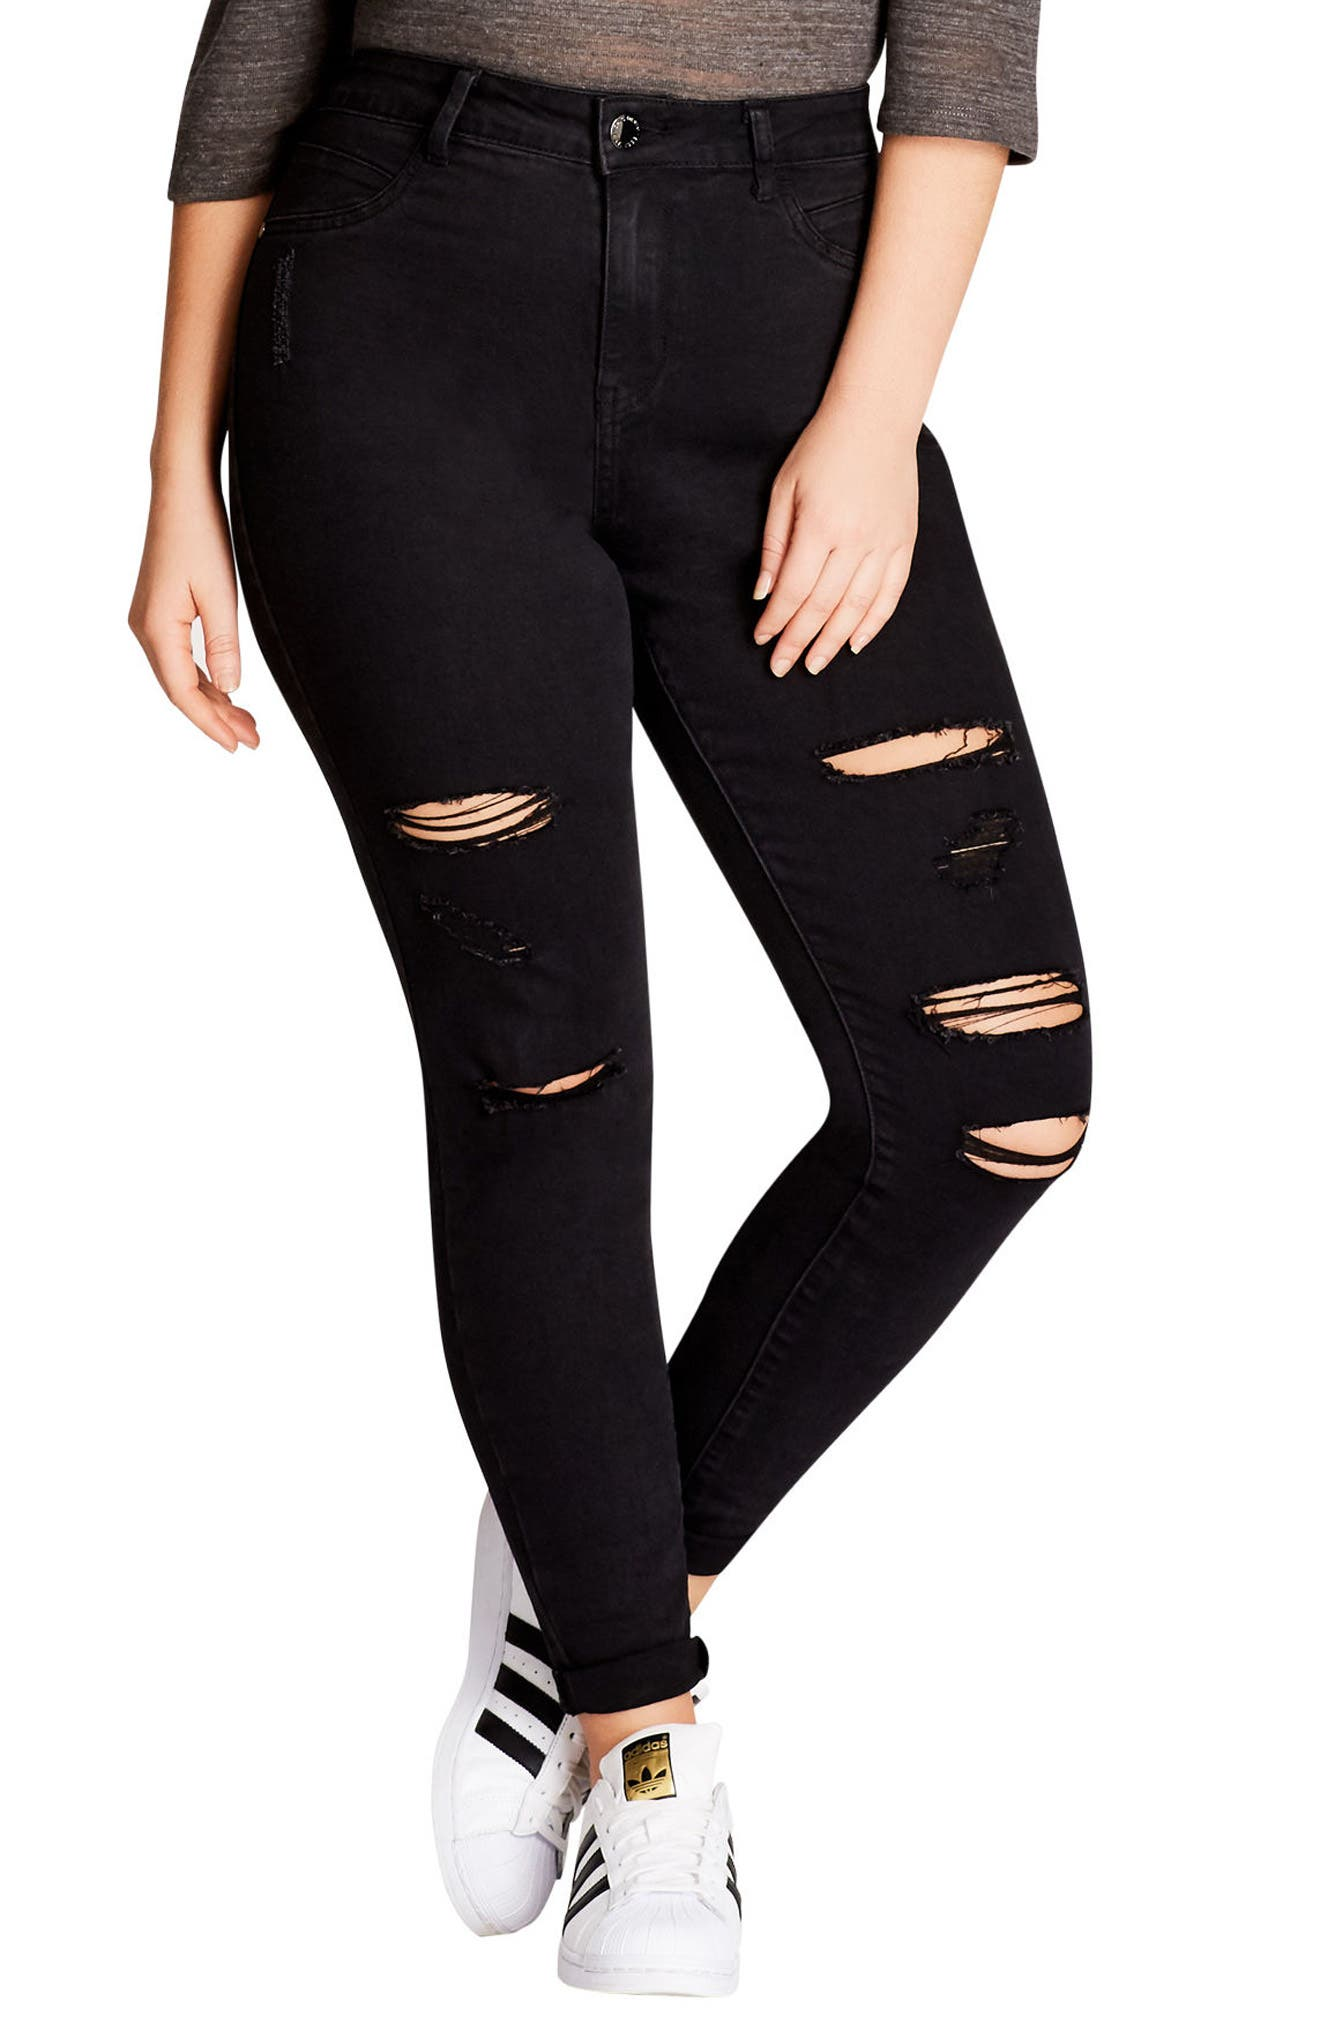 Main Image - City Chic Rock 'n' Roll Destroyed Skinny Jeans (Plus Size)